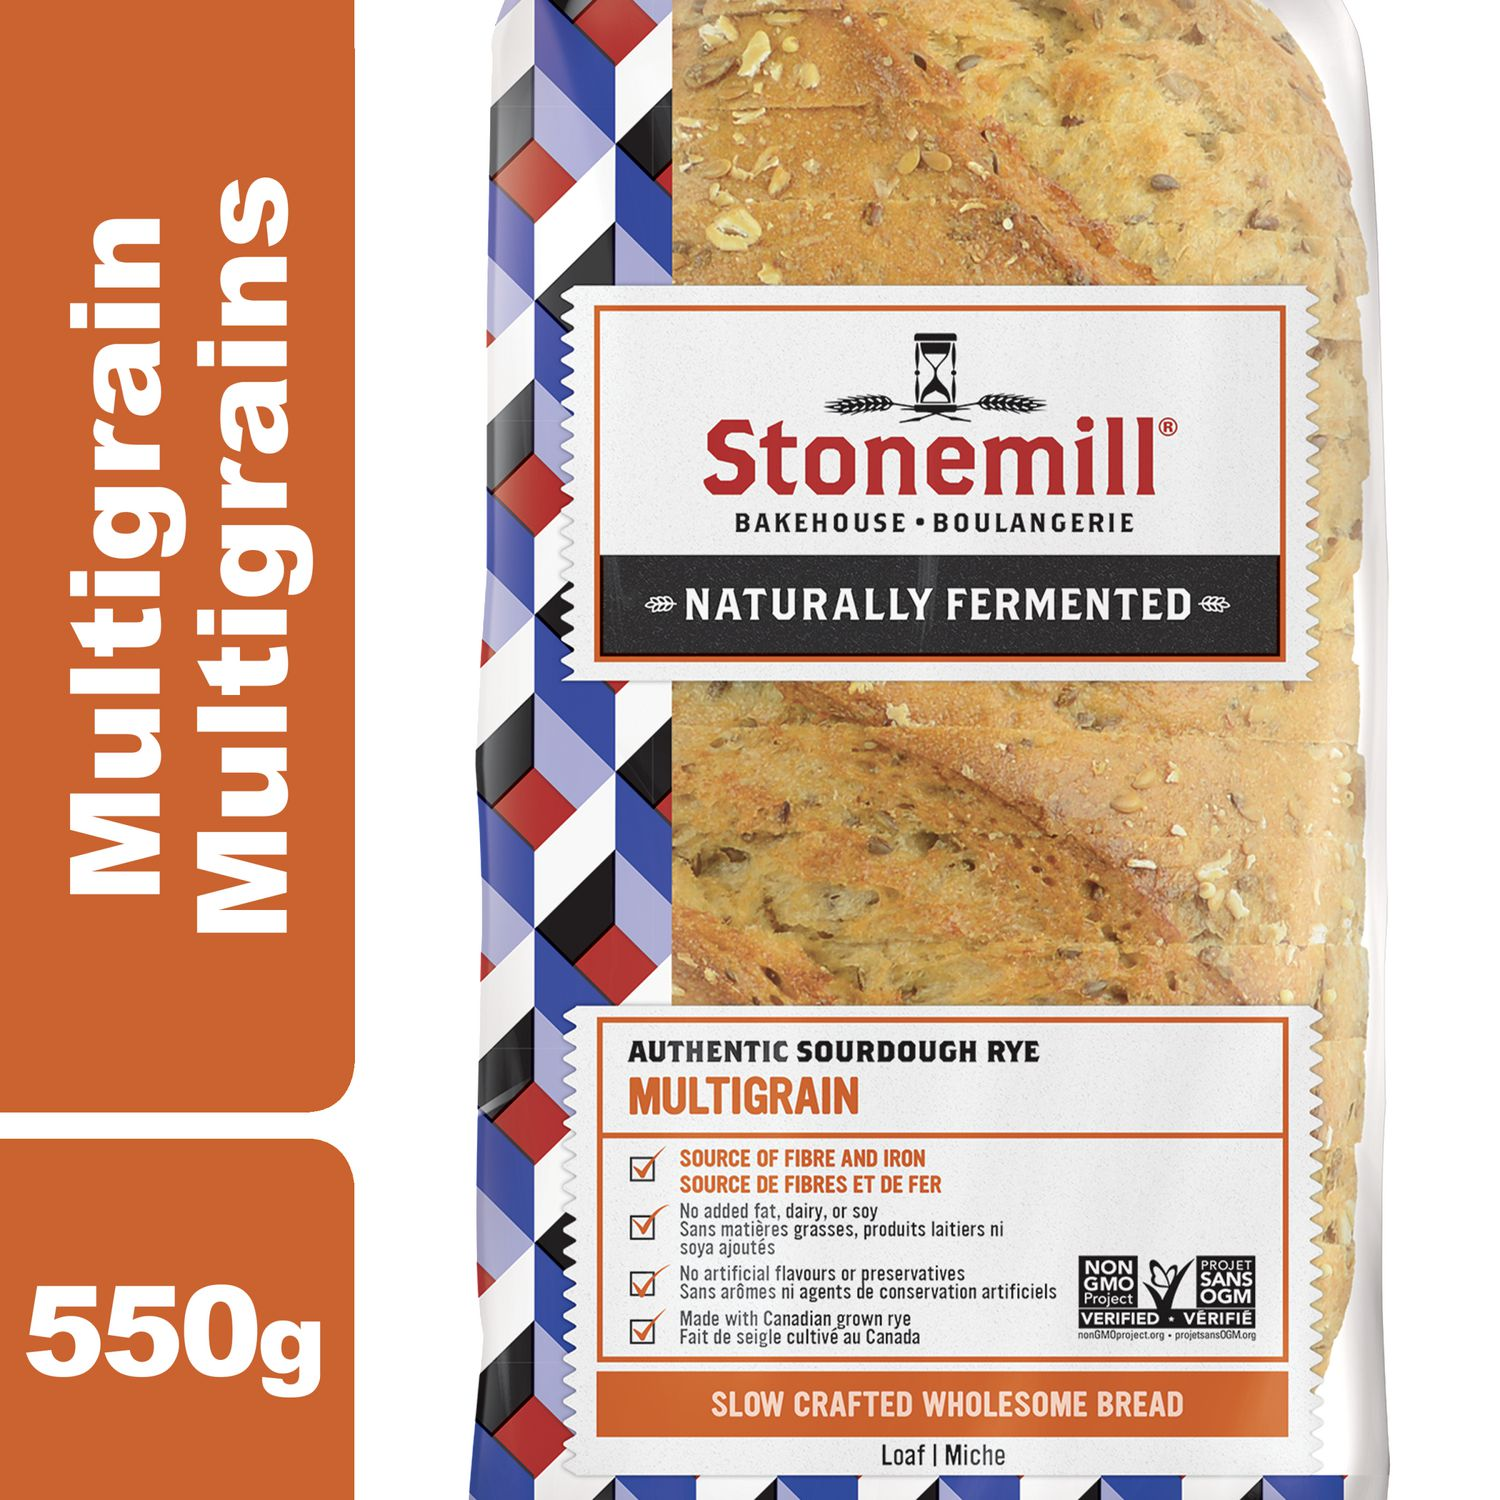 un coupon rabais Stonemill Naturally Fermented Bread